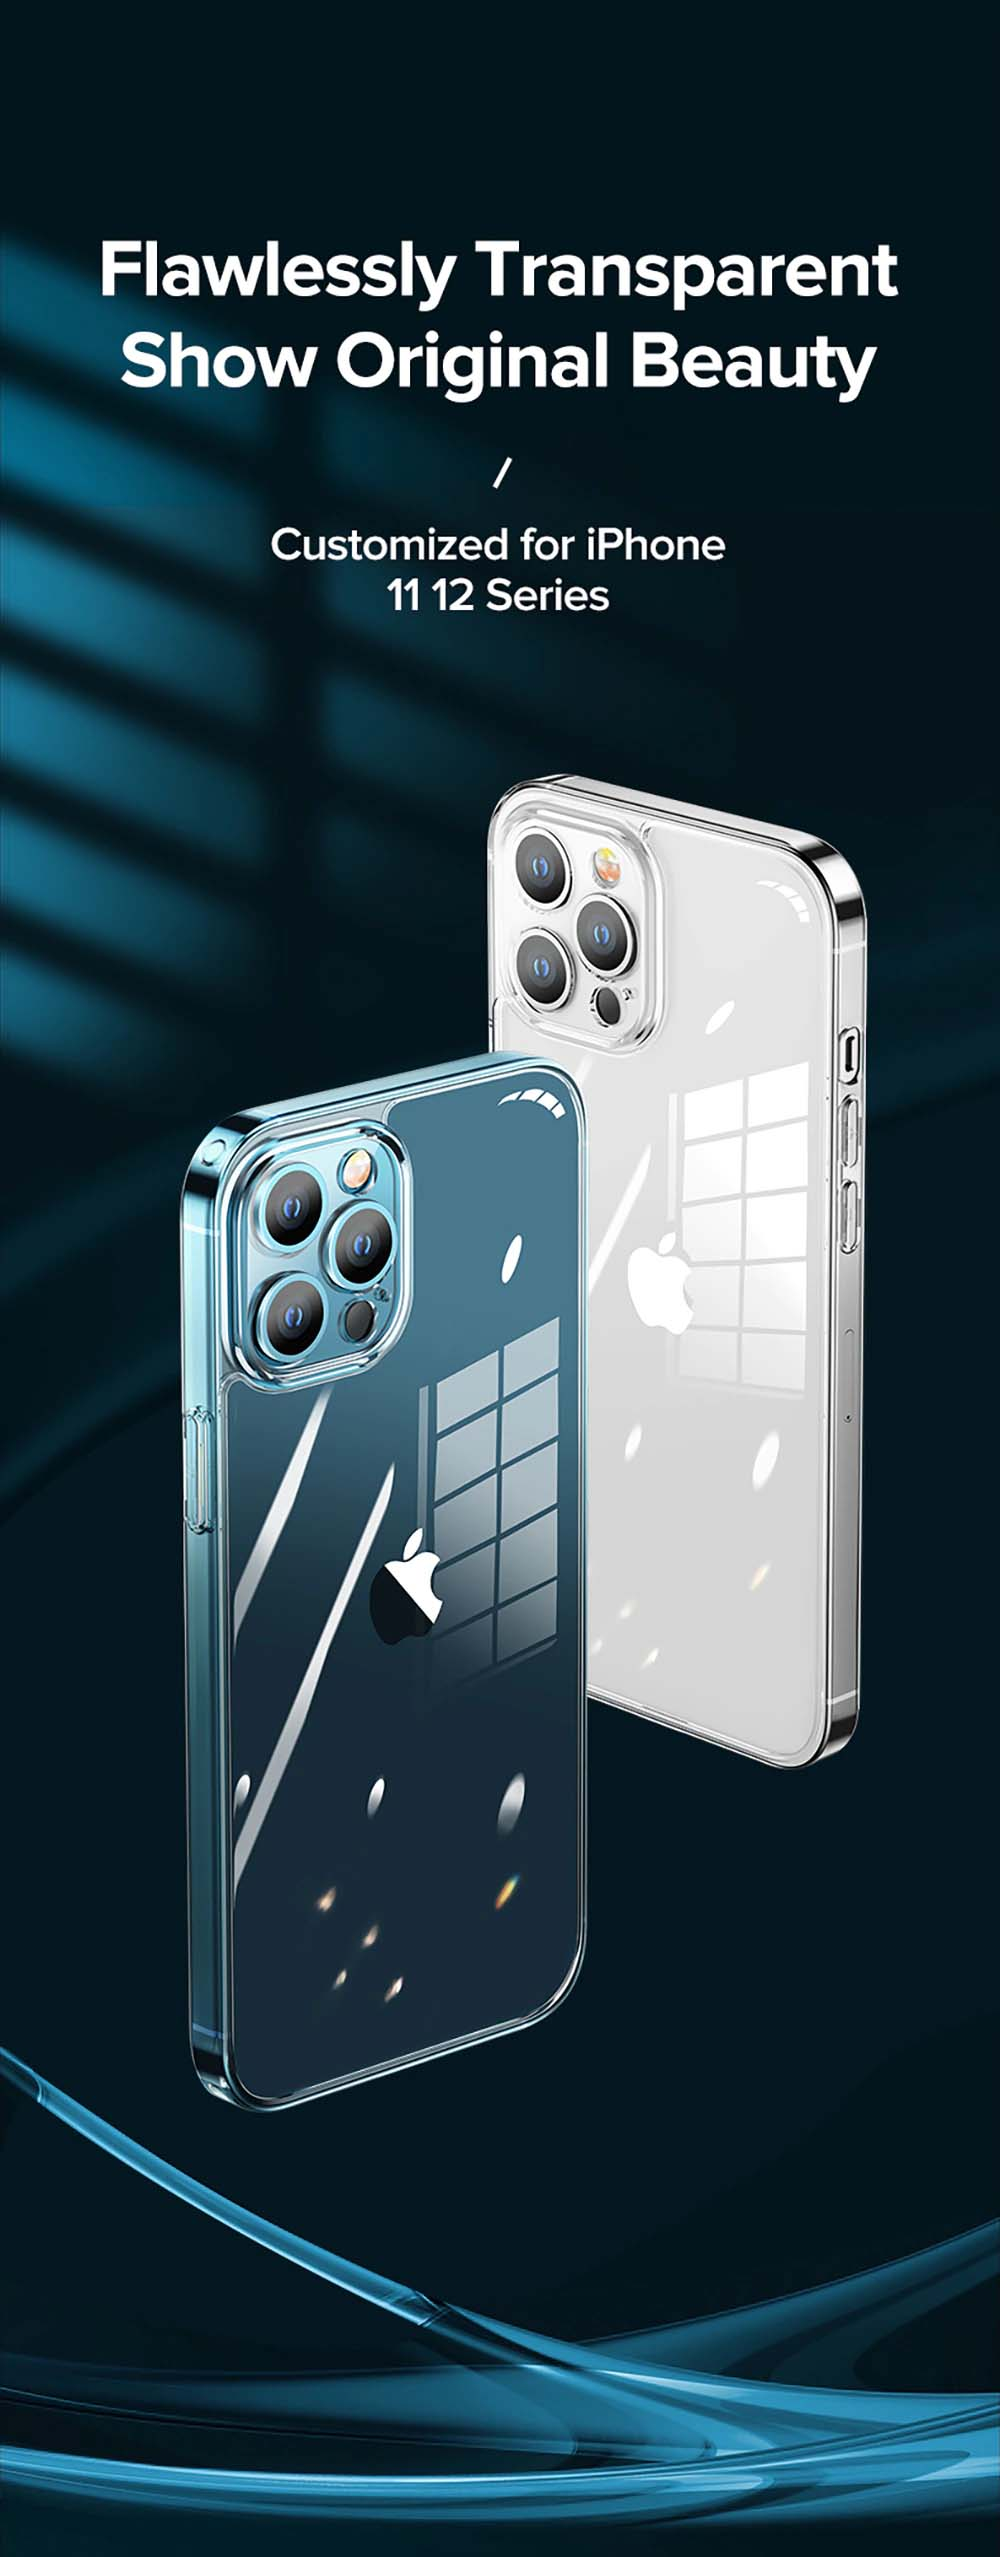 Luxury Anti-Scratch Clear Case For iPhone 13 12 Pro Max Full Lens Protection Non-Slip Anti-Yellow Transparent Cover For iPhone 11 12